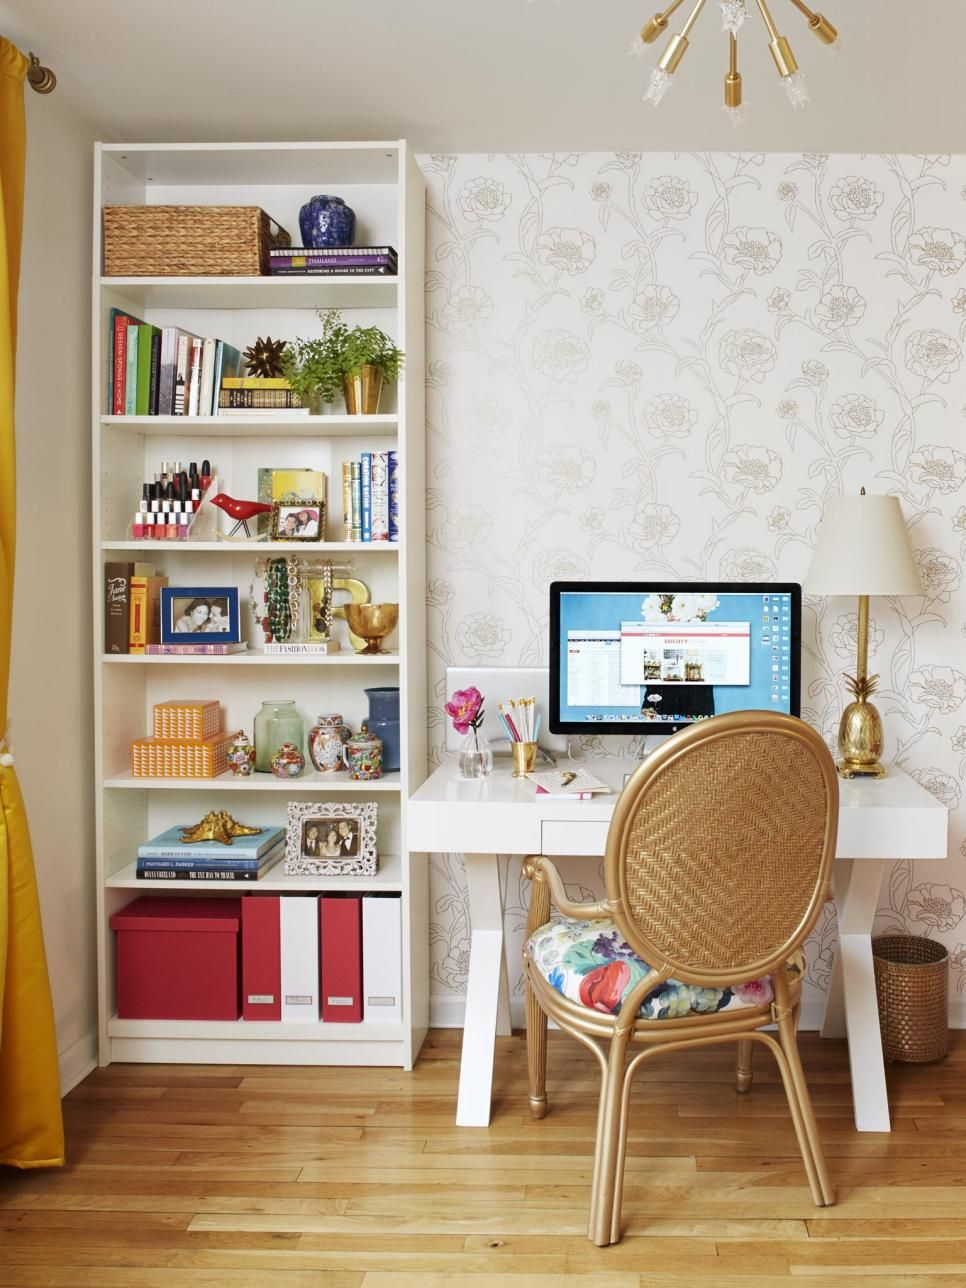 An 8 Foot Wide Wall In Roxy And Alanu0027s Bedroom Serves As A Workspace. The  Lacquered Desk From World Market And Curvy Gold Chair With A Floral Seat  Are ...